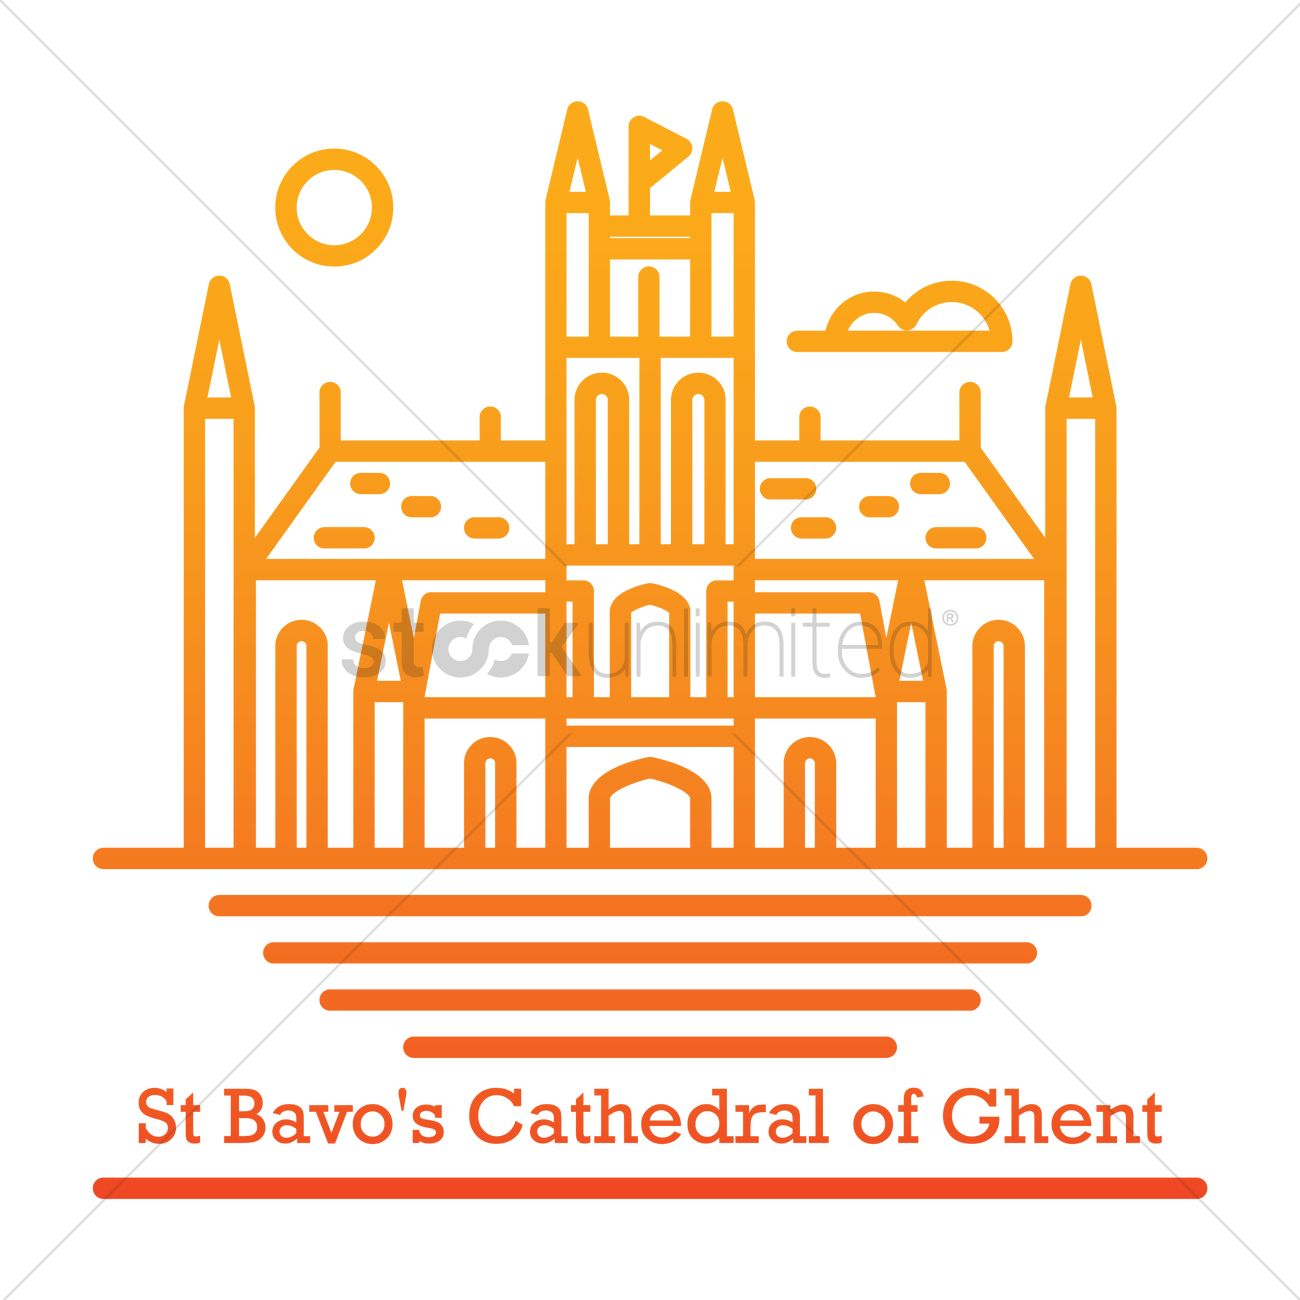 St bavo's cathedral of ghent Vector Image.